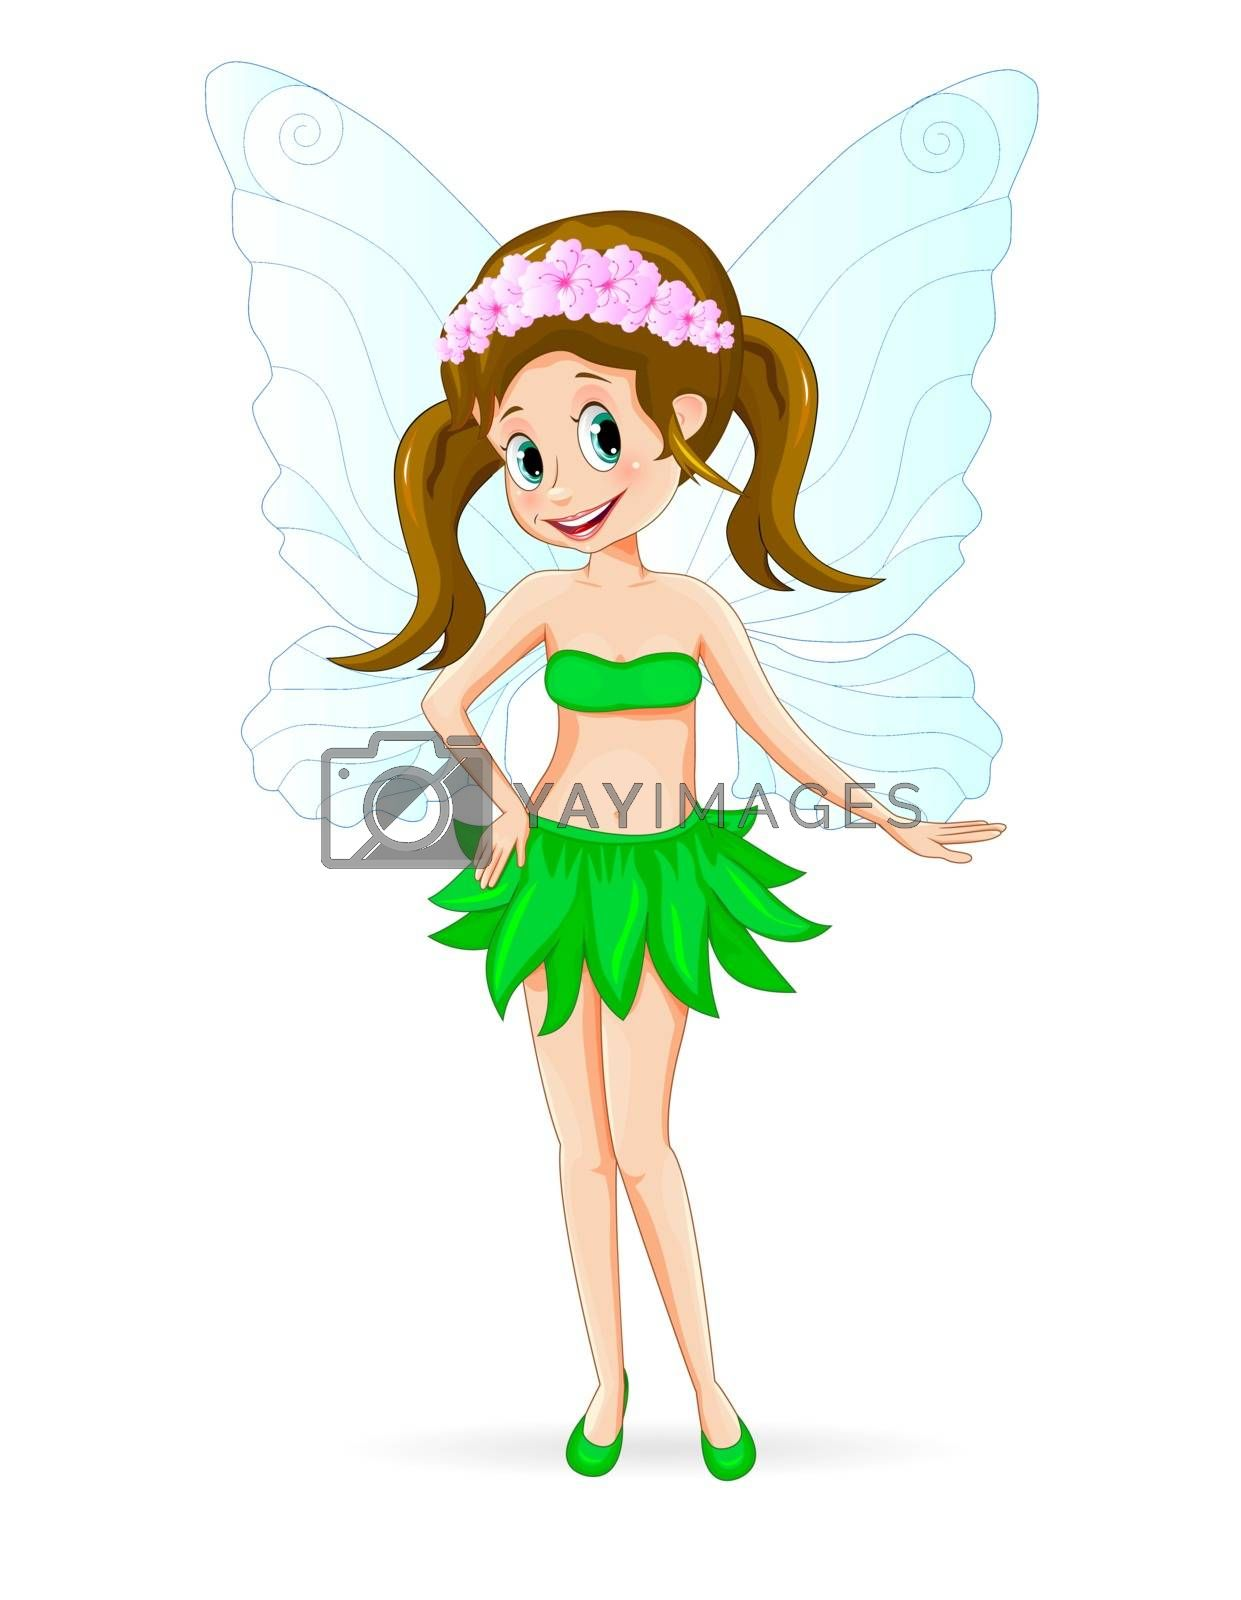 Cartoon fairy on a white background. The fairy is dressed in a skirt of green leaves and with flowers in her hair.